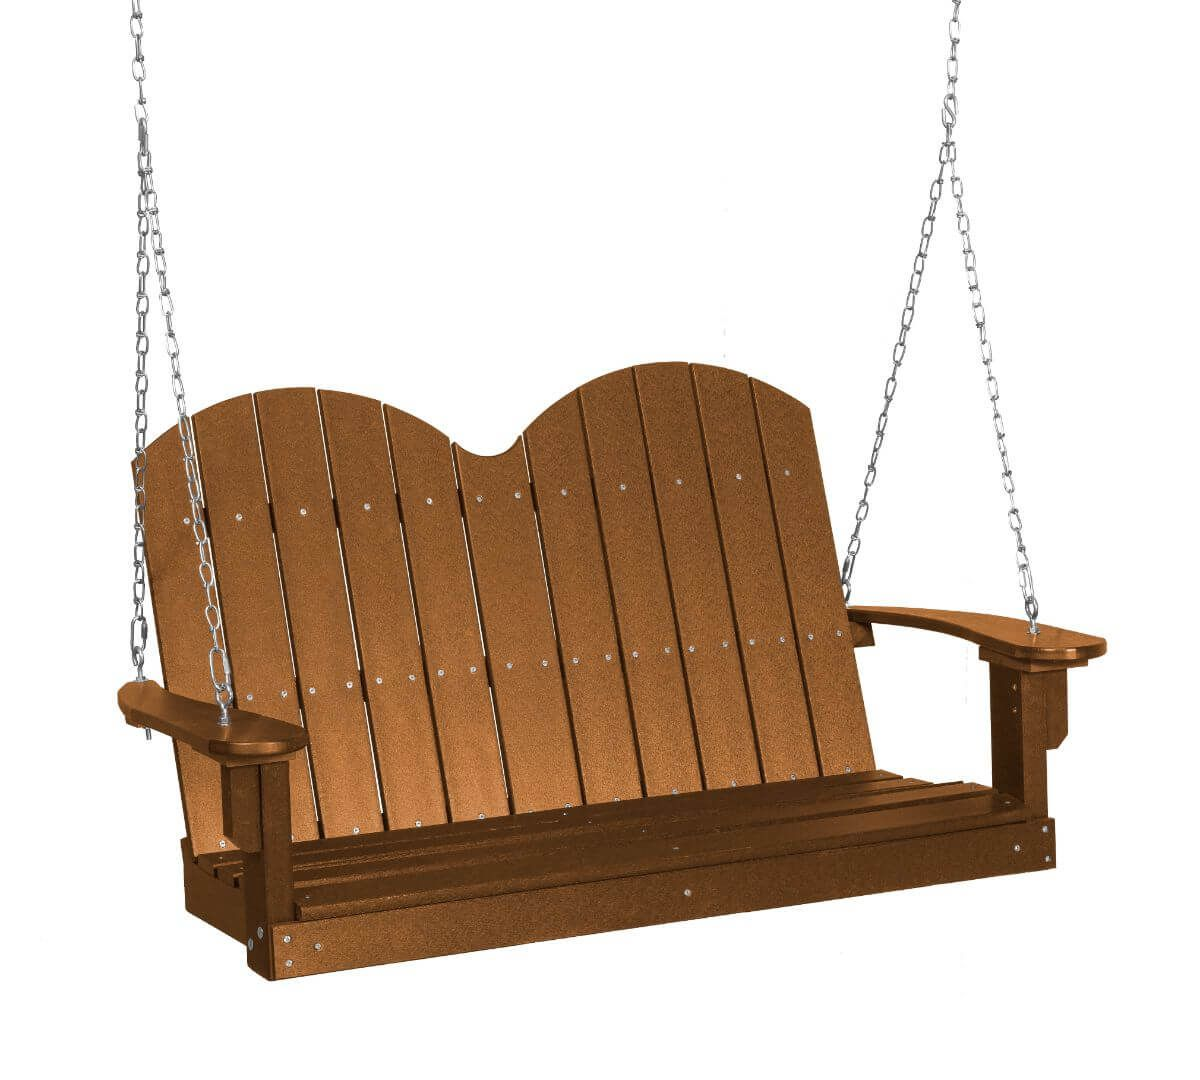 Tudor Brown Green Bay Outdoor Swing